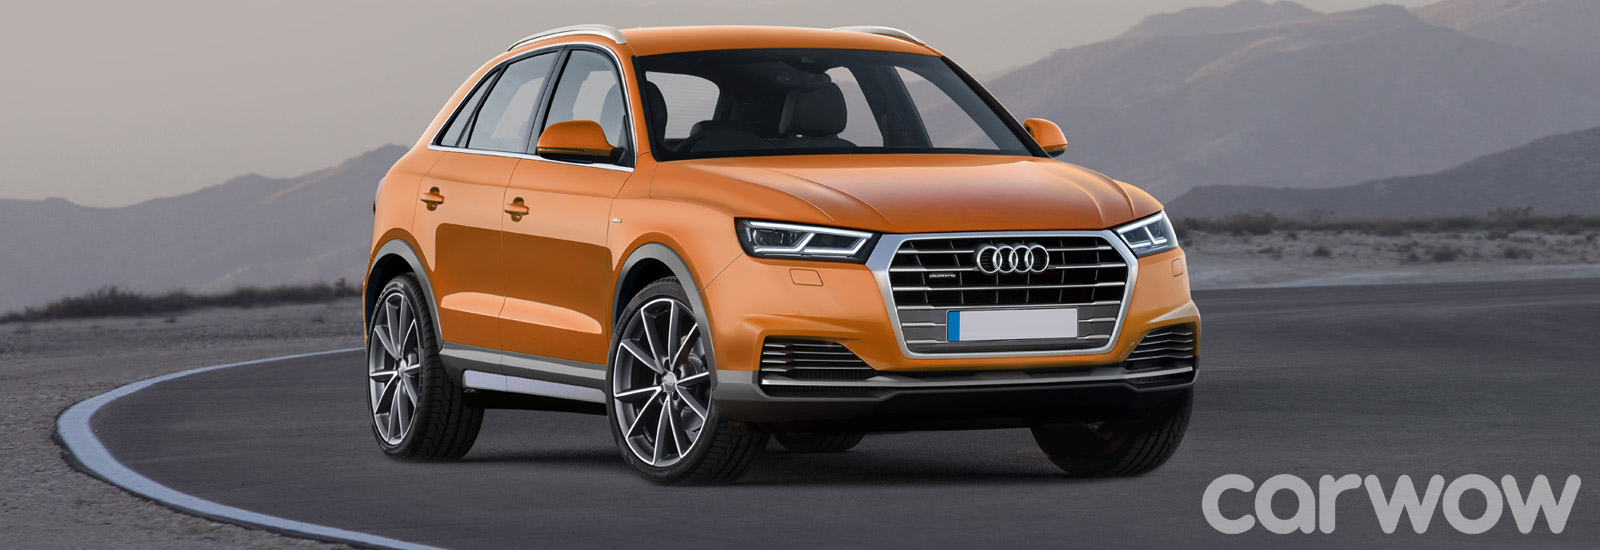 audi q3 2018 model. plain audi our exclusive render shows what the new q3 could look like throughout audi q3 2018 model h